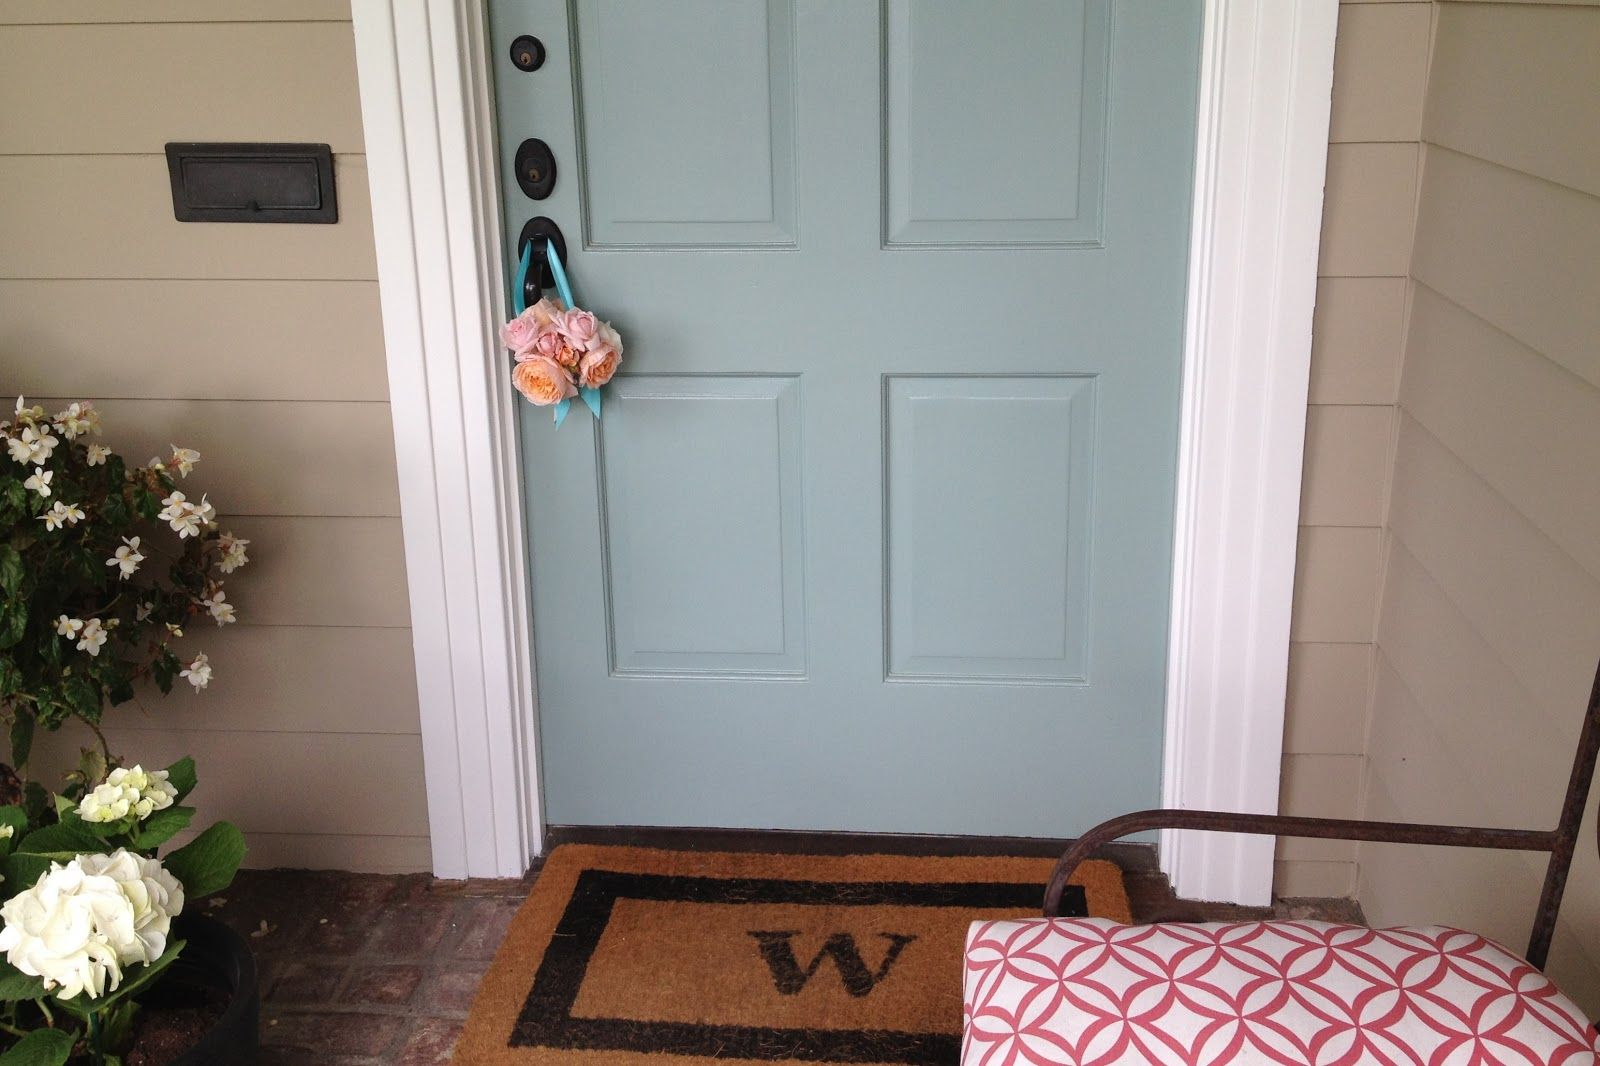 Stratton Blue By Benjamin Moore For Inside Of Front Door